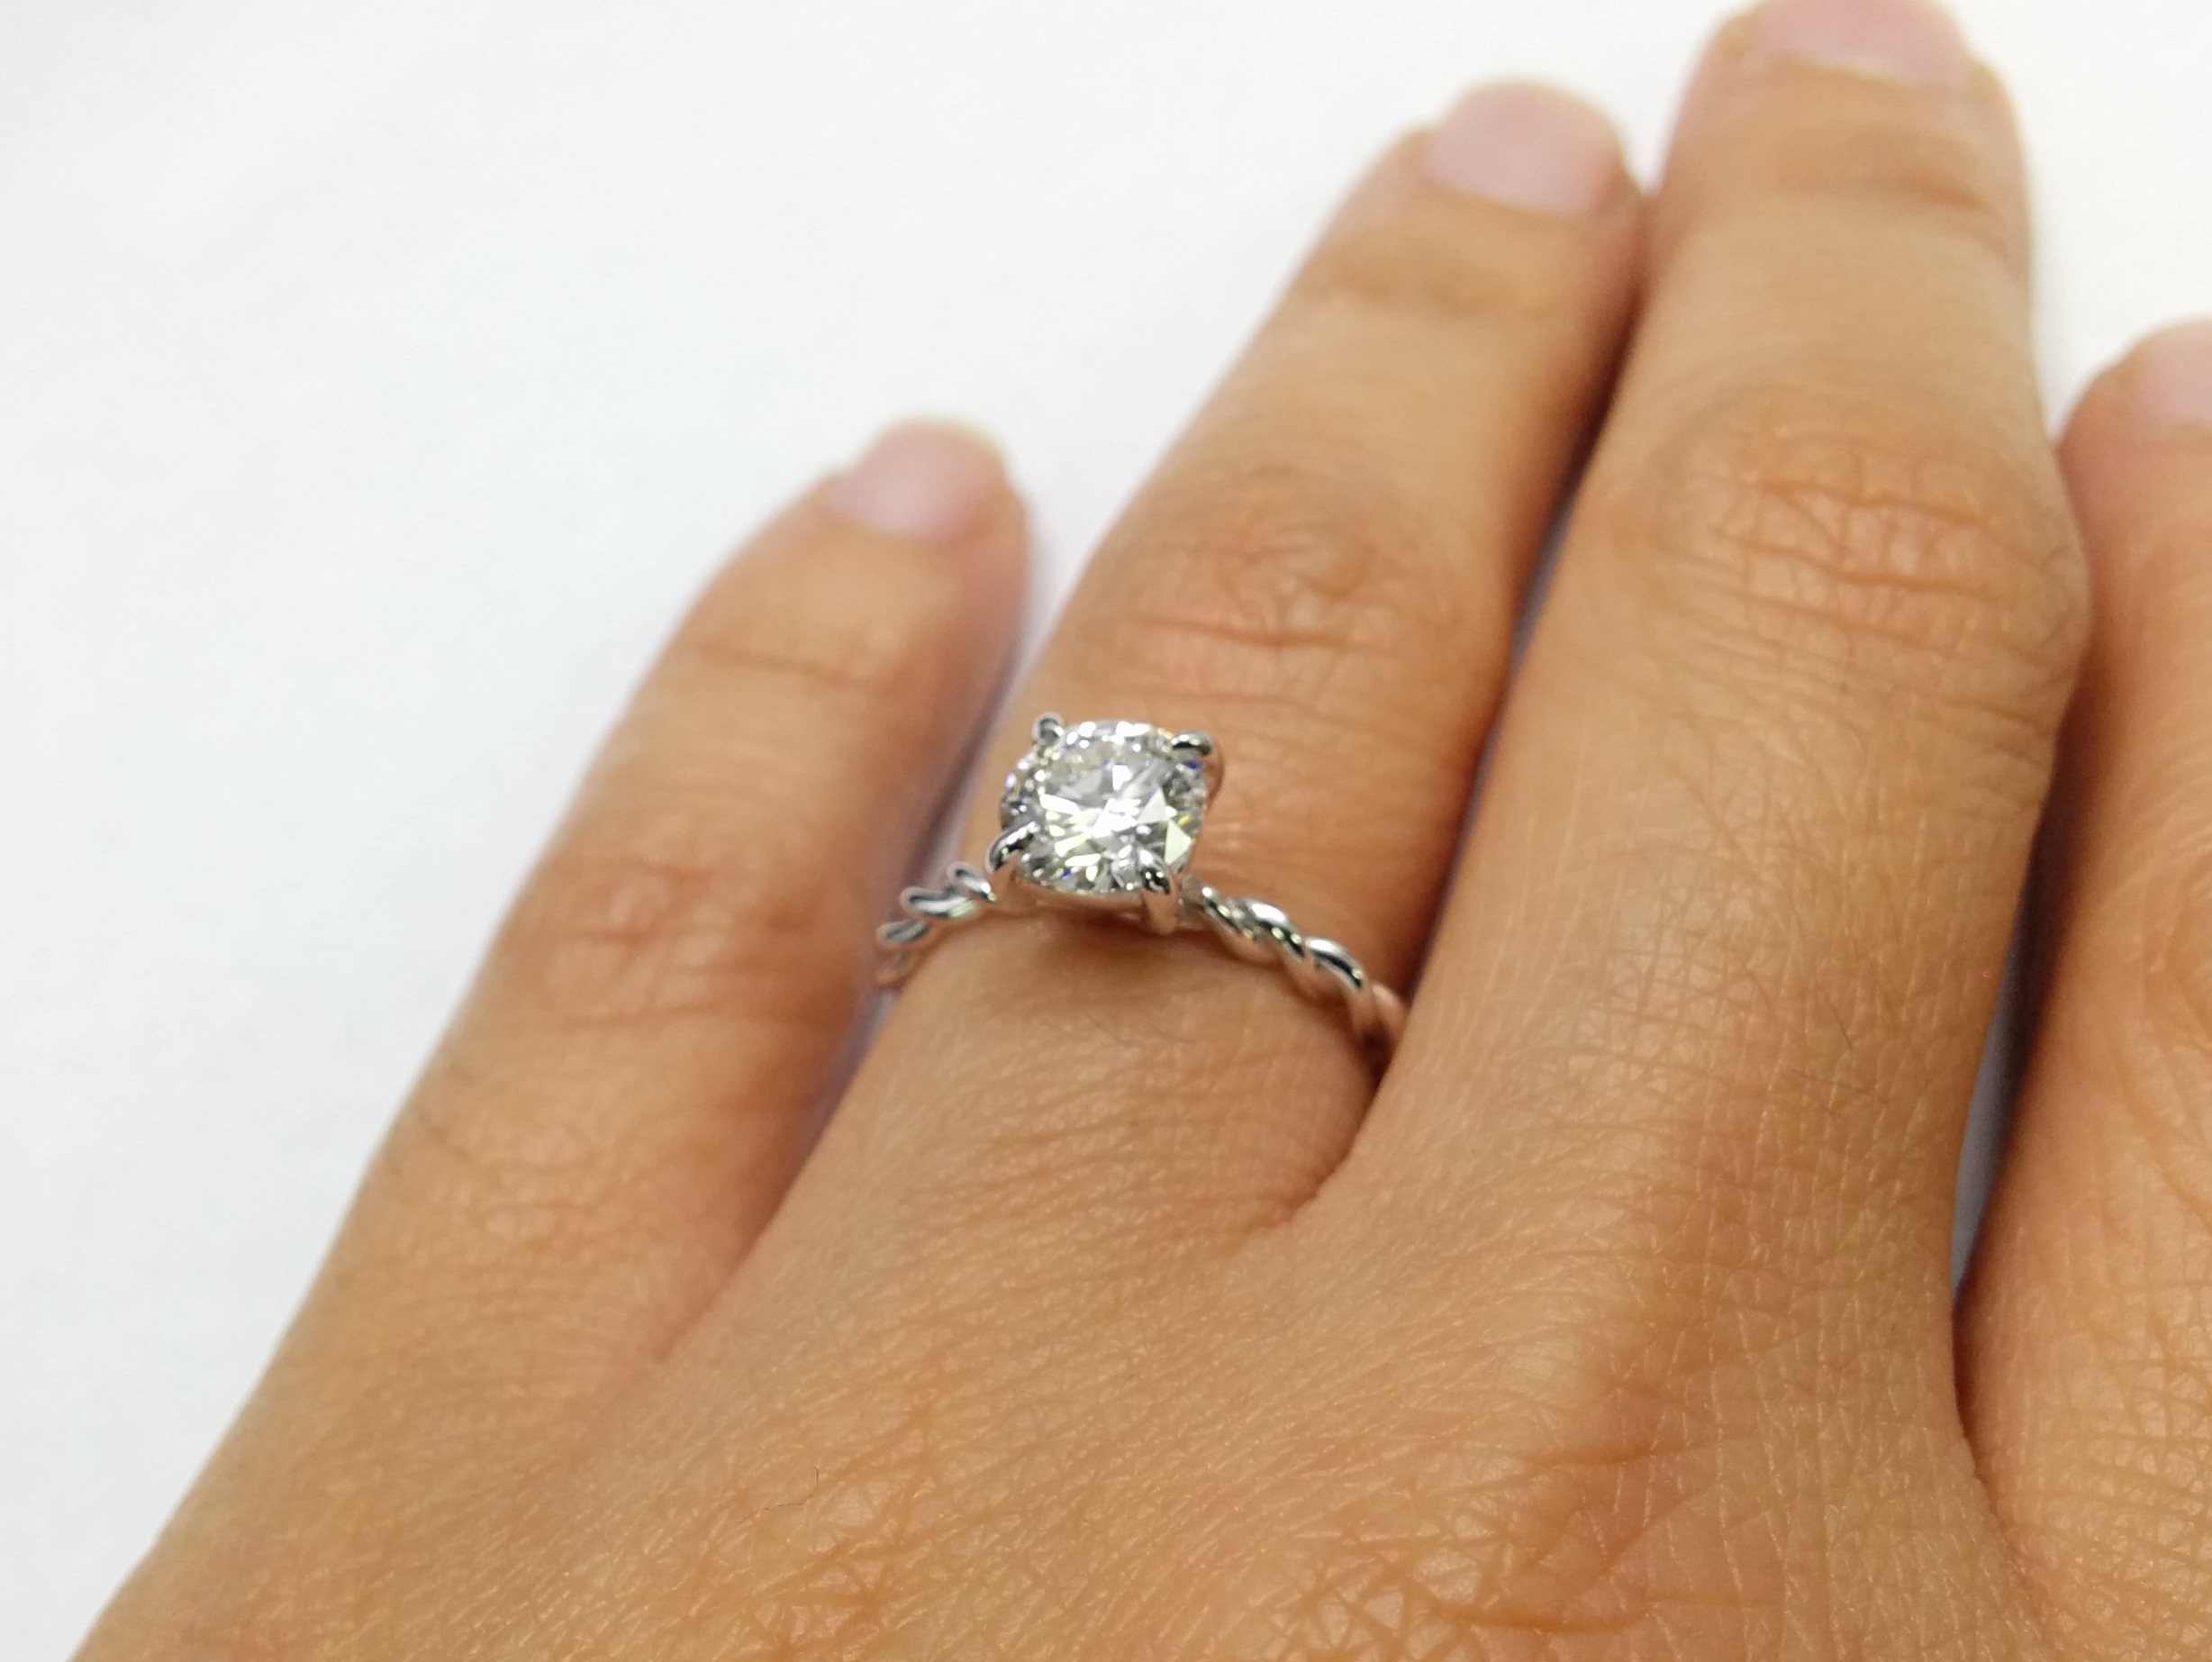 wedding ring diamondland jewelry diamond carat solitaire rings